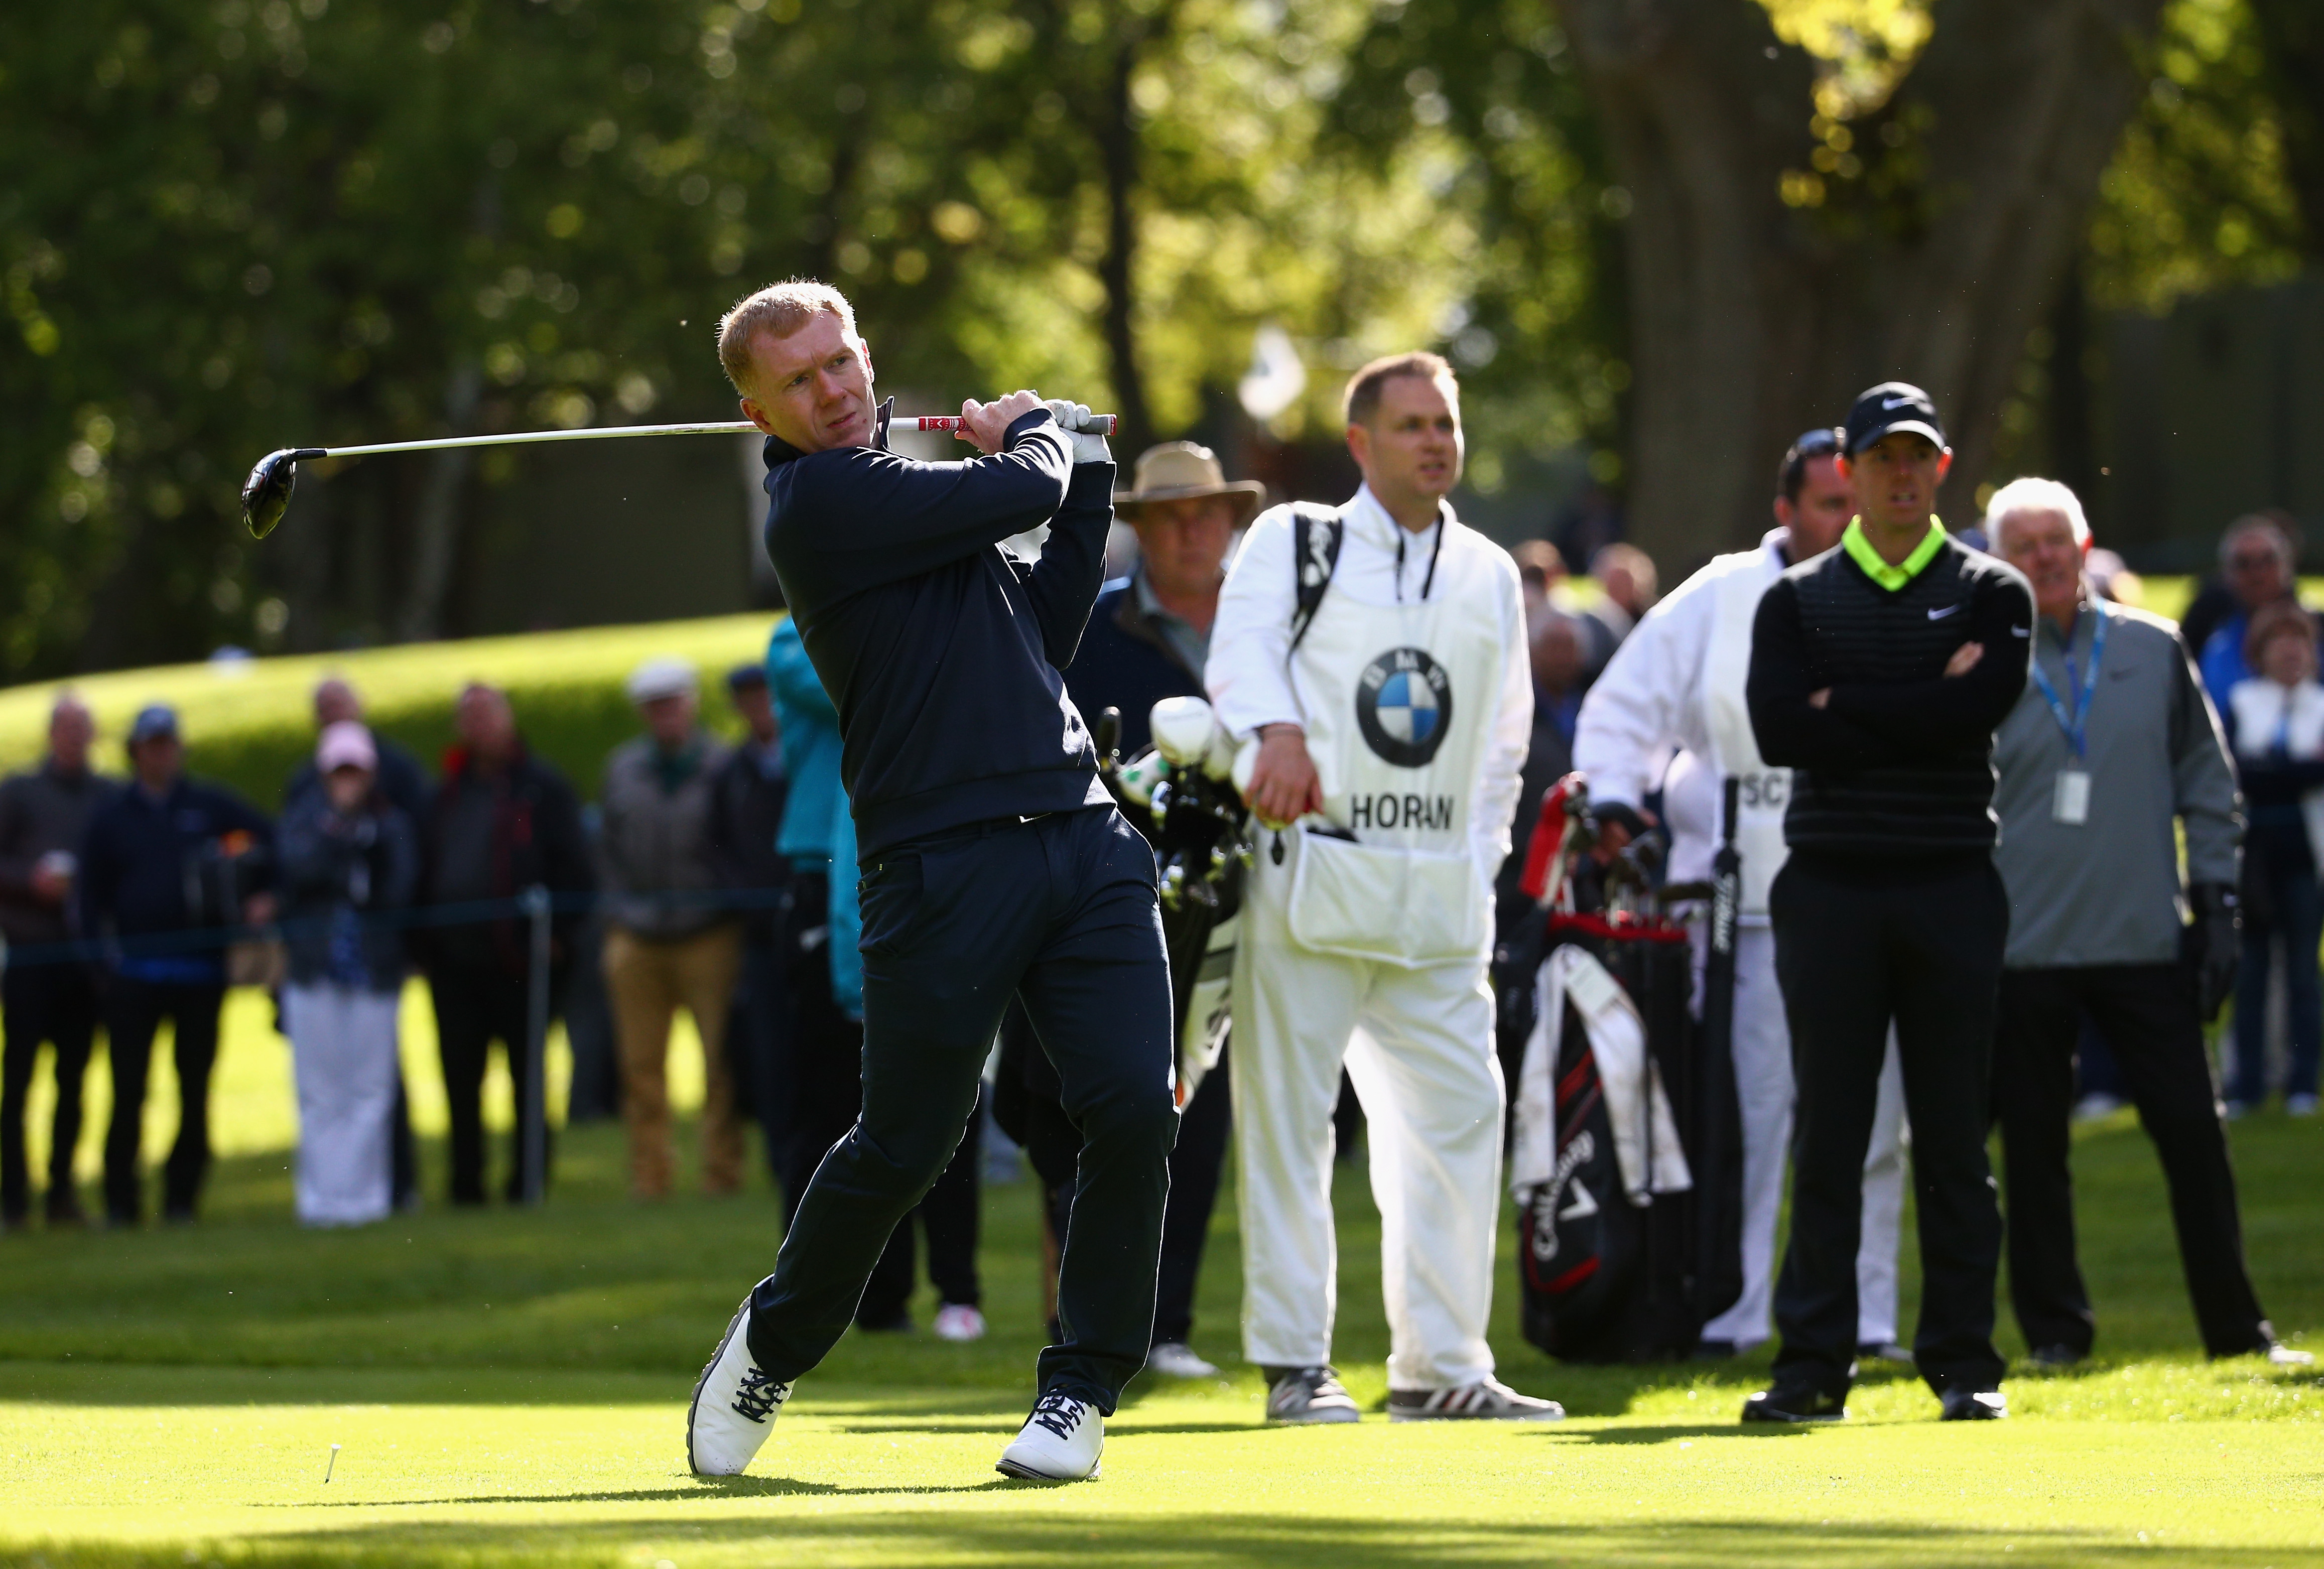 18 football tennis and cricket stars who play golf really really well